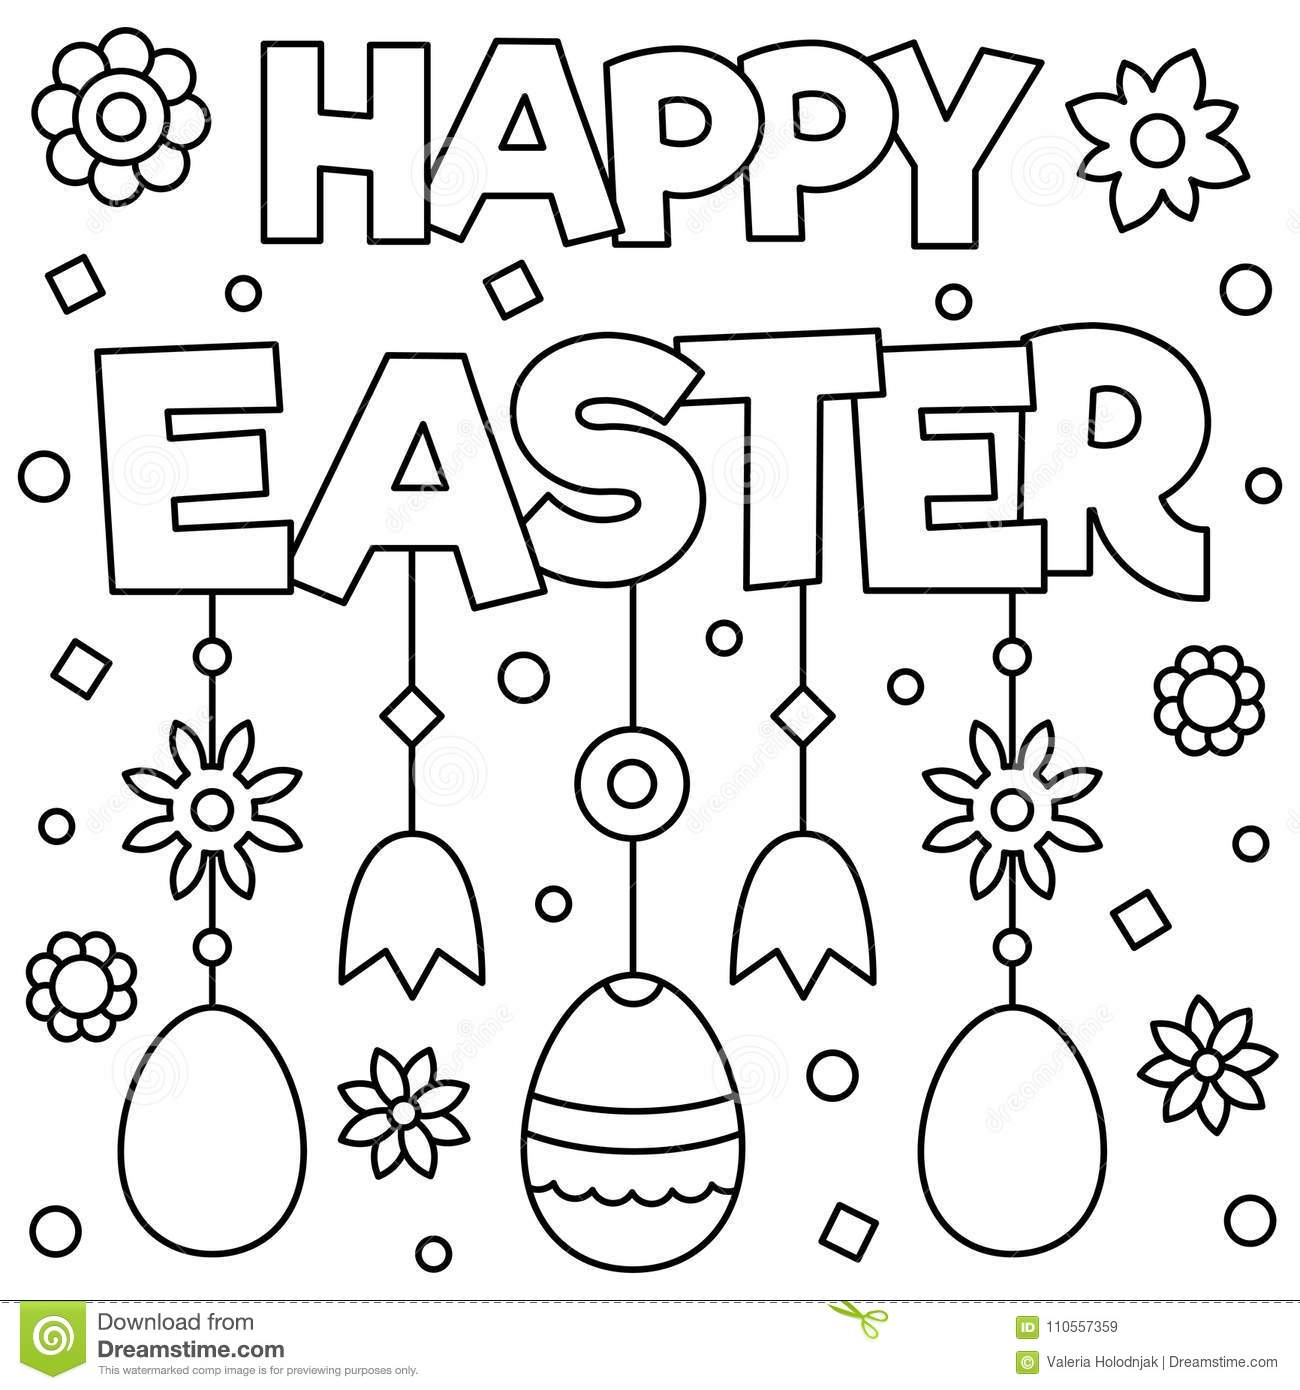 Happy Easter Coloring Page Vector Illustration Stock Vector Illustration Of Easter Kids 110557359